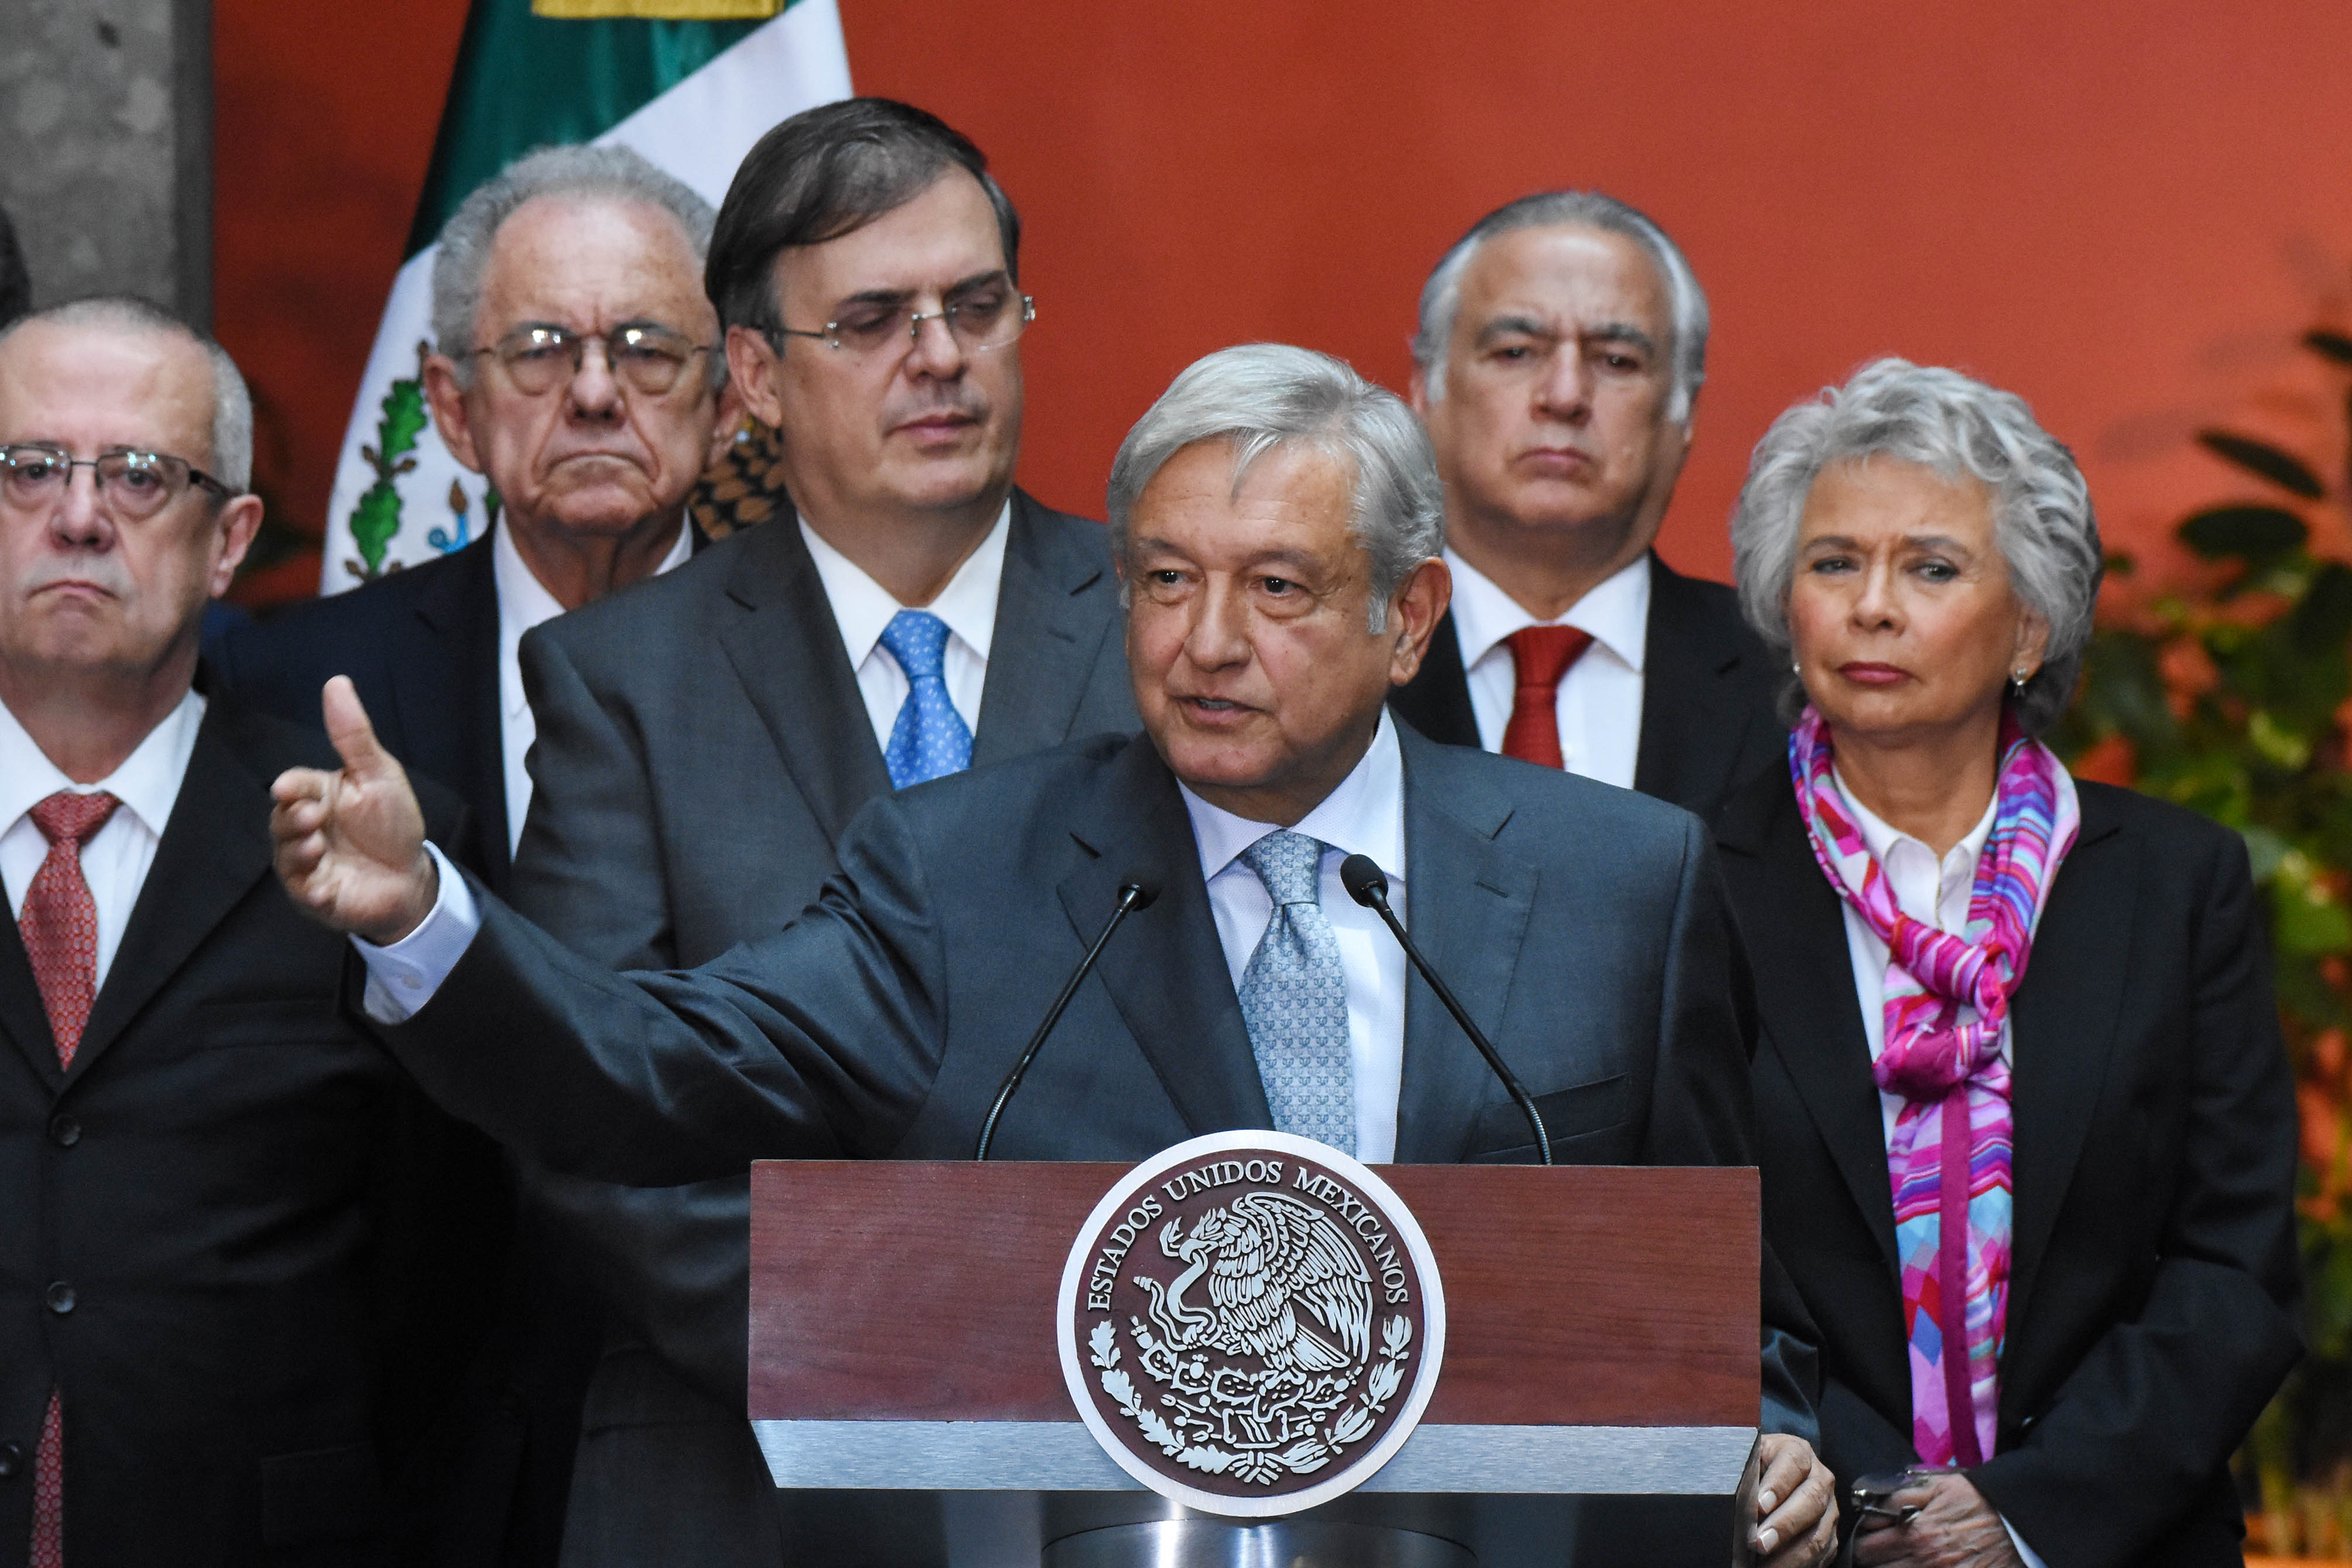 Mexicos Supreme Court Rules Cannabis Prohibition Unconstitutional1 Mexicos Supreme Court Rules Cannabis Prohibition Unconstitutional